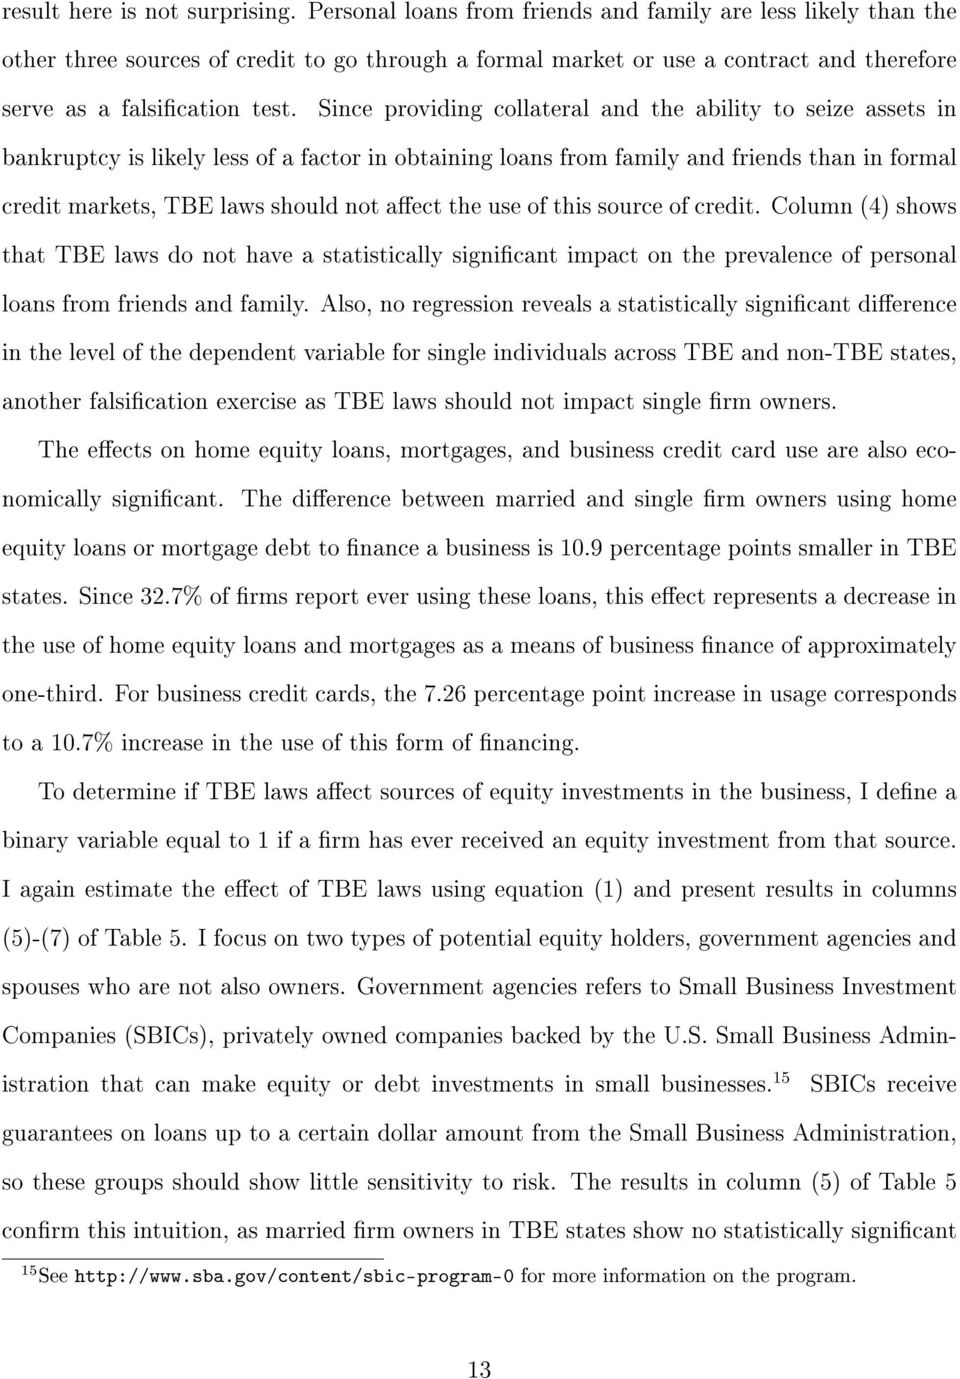 Since providing collateral and the ability to seize assets in bankruptcy is likely less of a factor in obtaining loans from family and friends than in formal credit markets, TBE laws should not aect